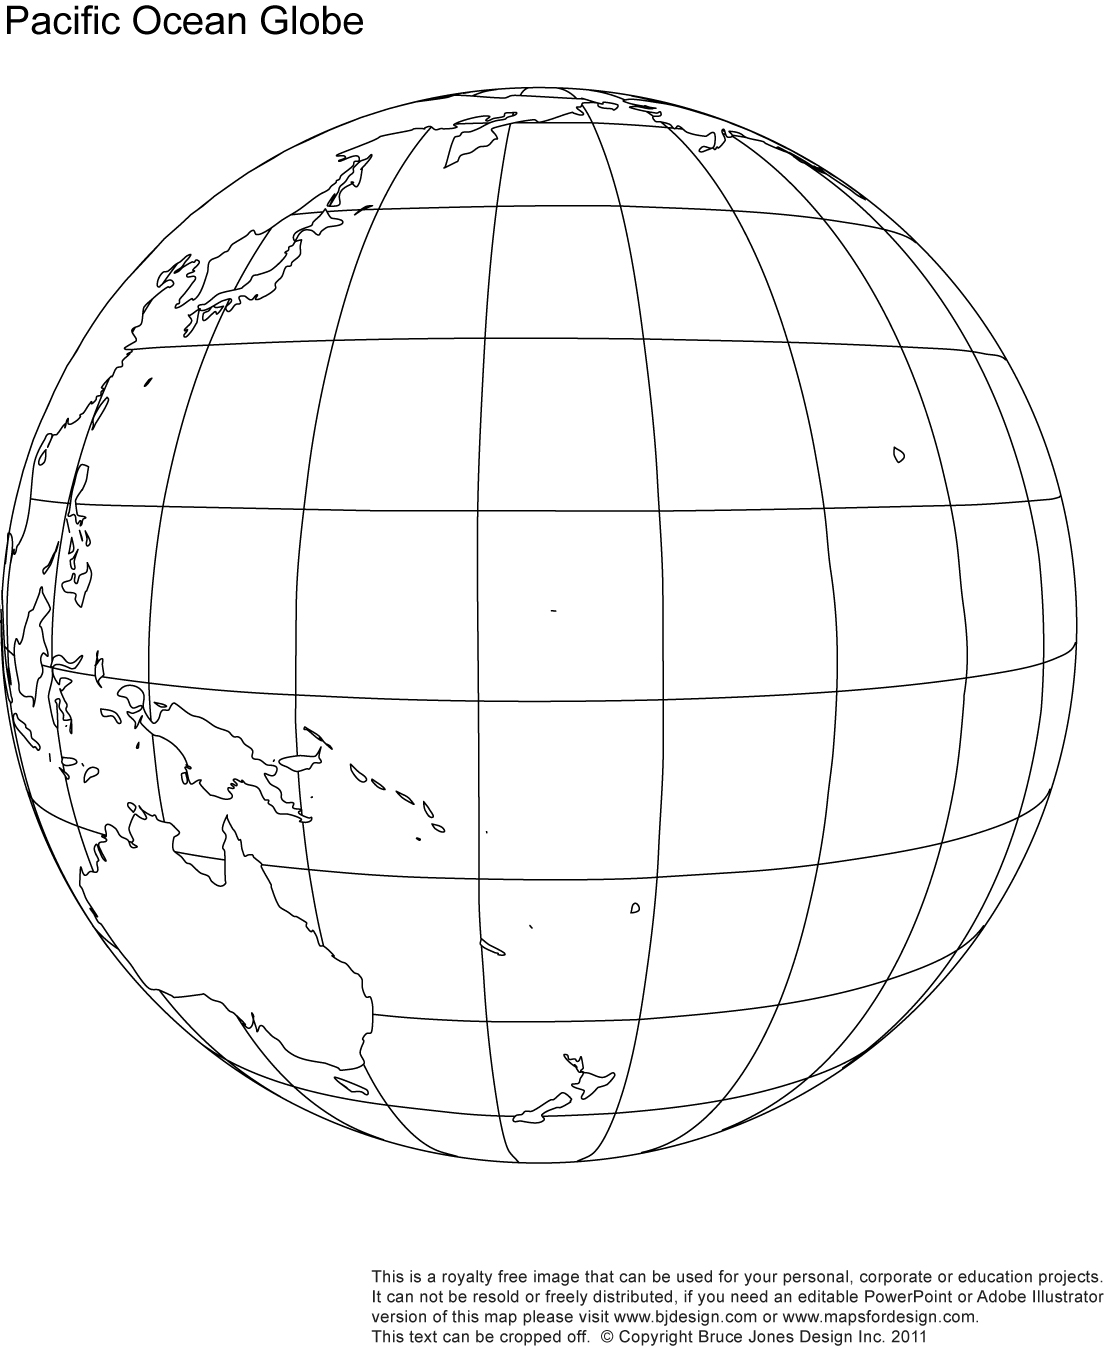 Pacific Ocean Globe Map, outline, blank, printable, royalty free, jpg map